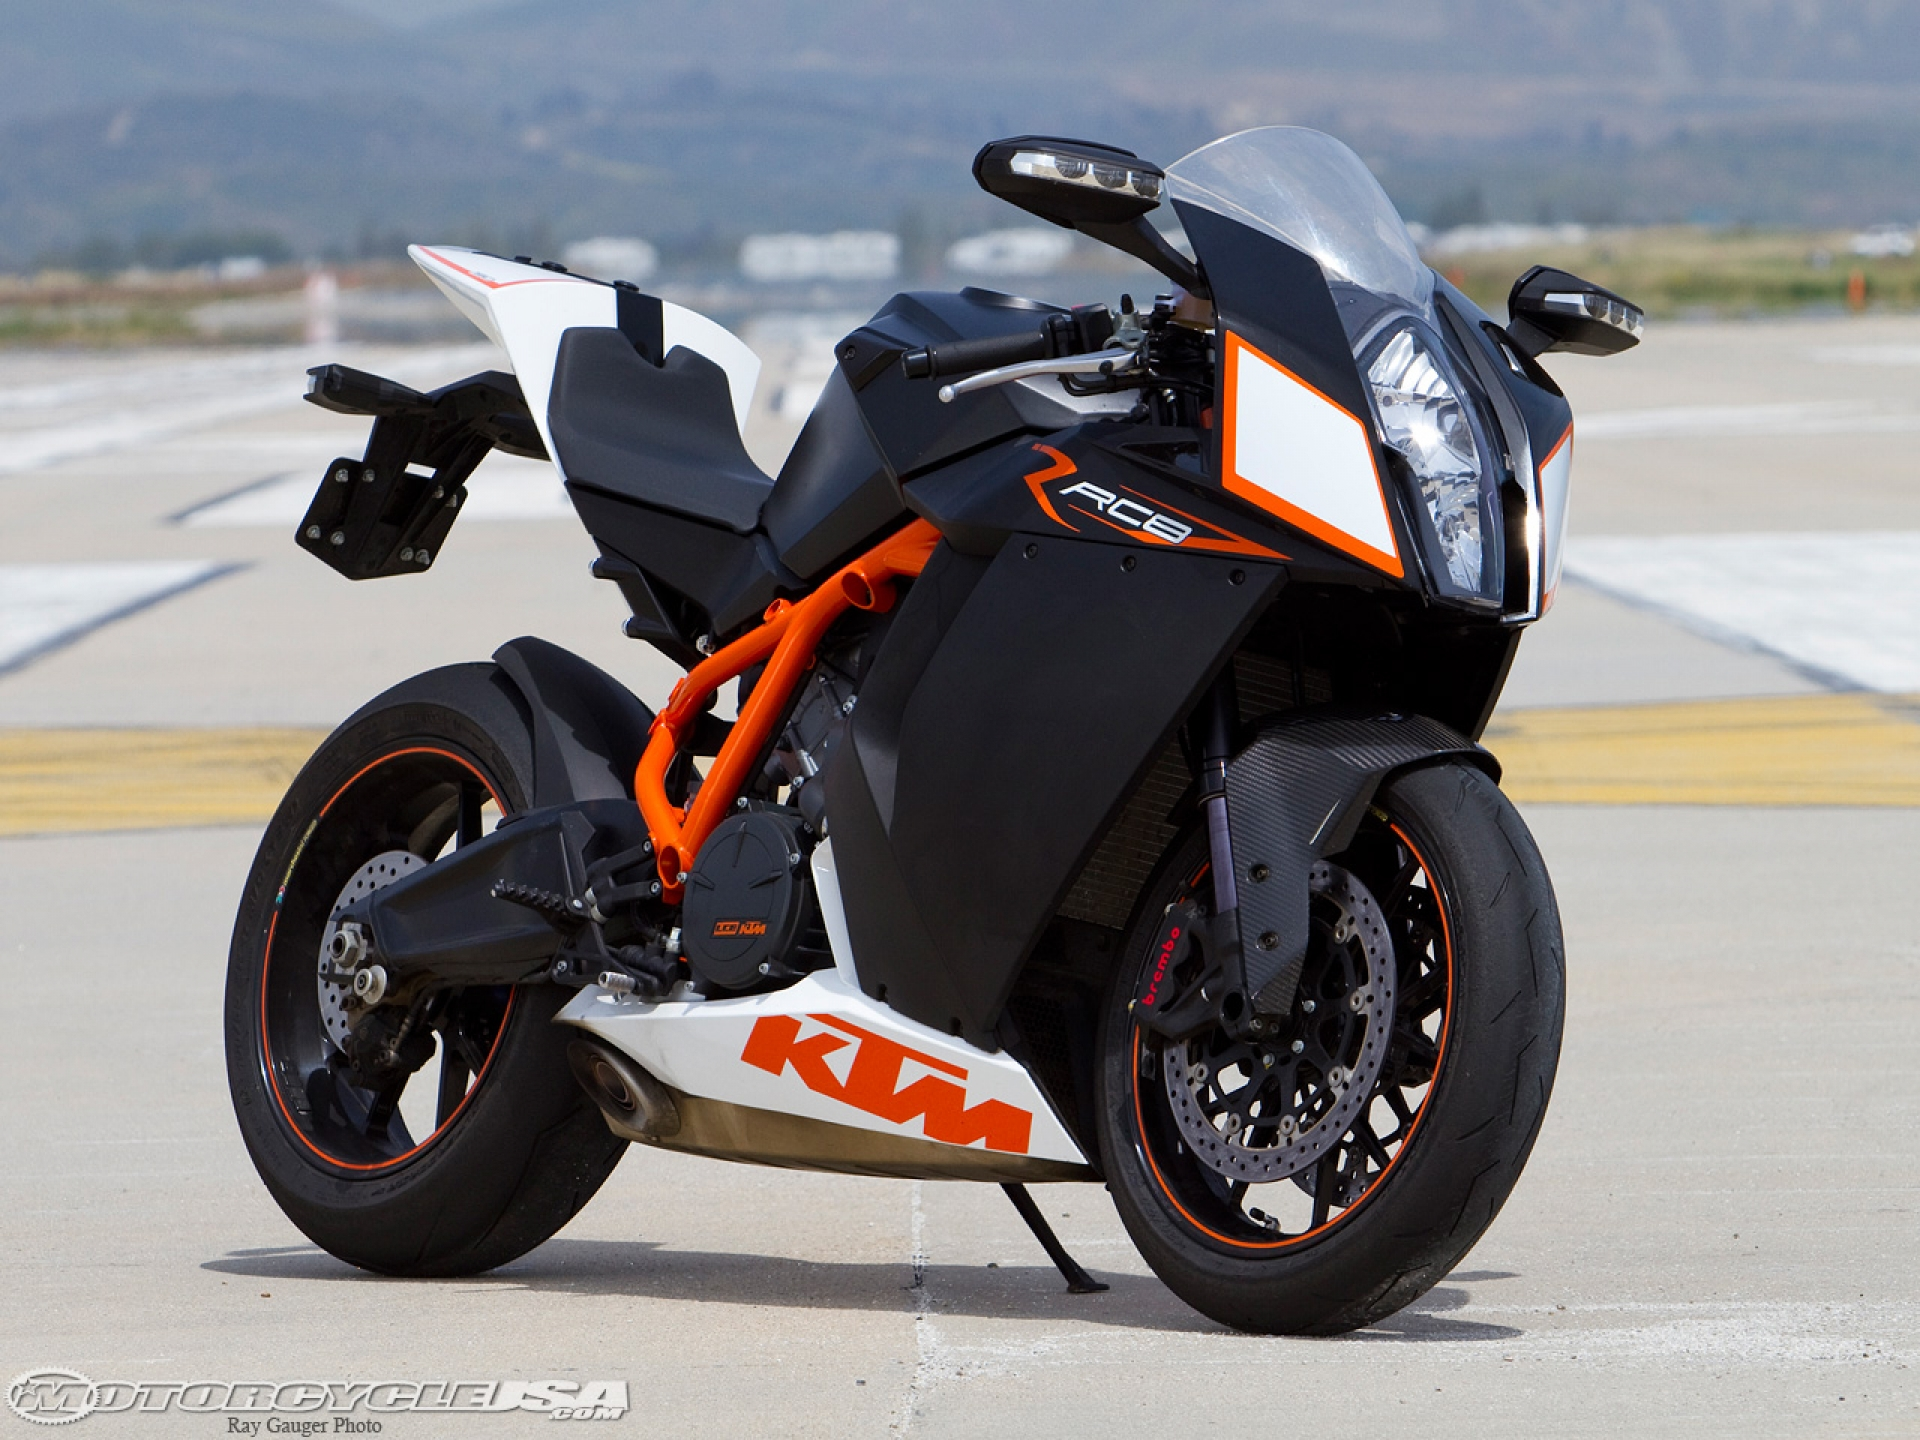 1920x1440 - KTM RC8 Wallpapers 6